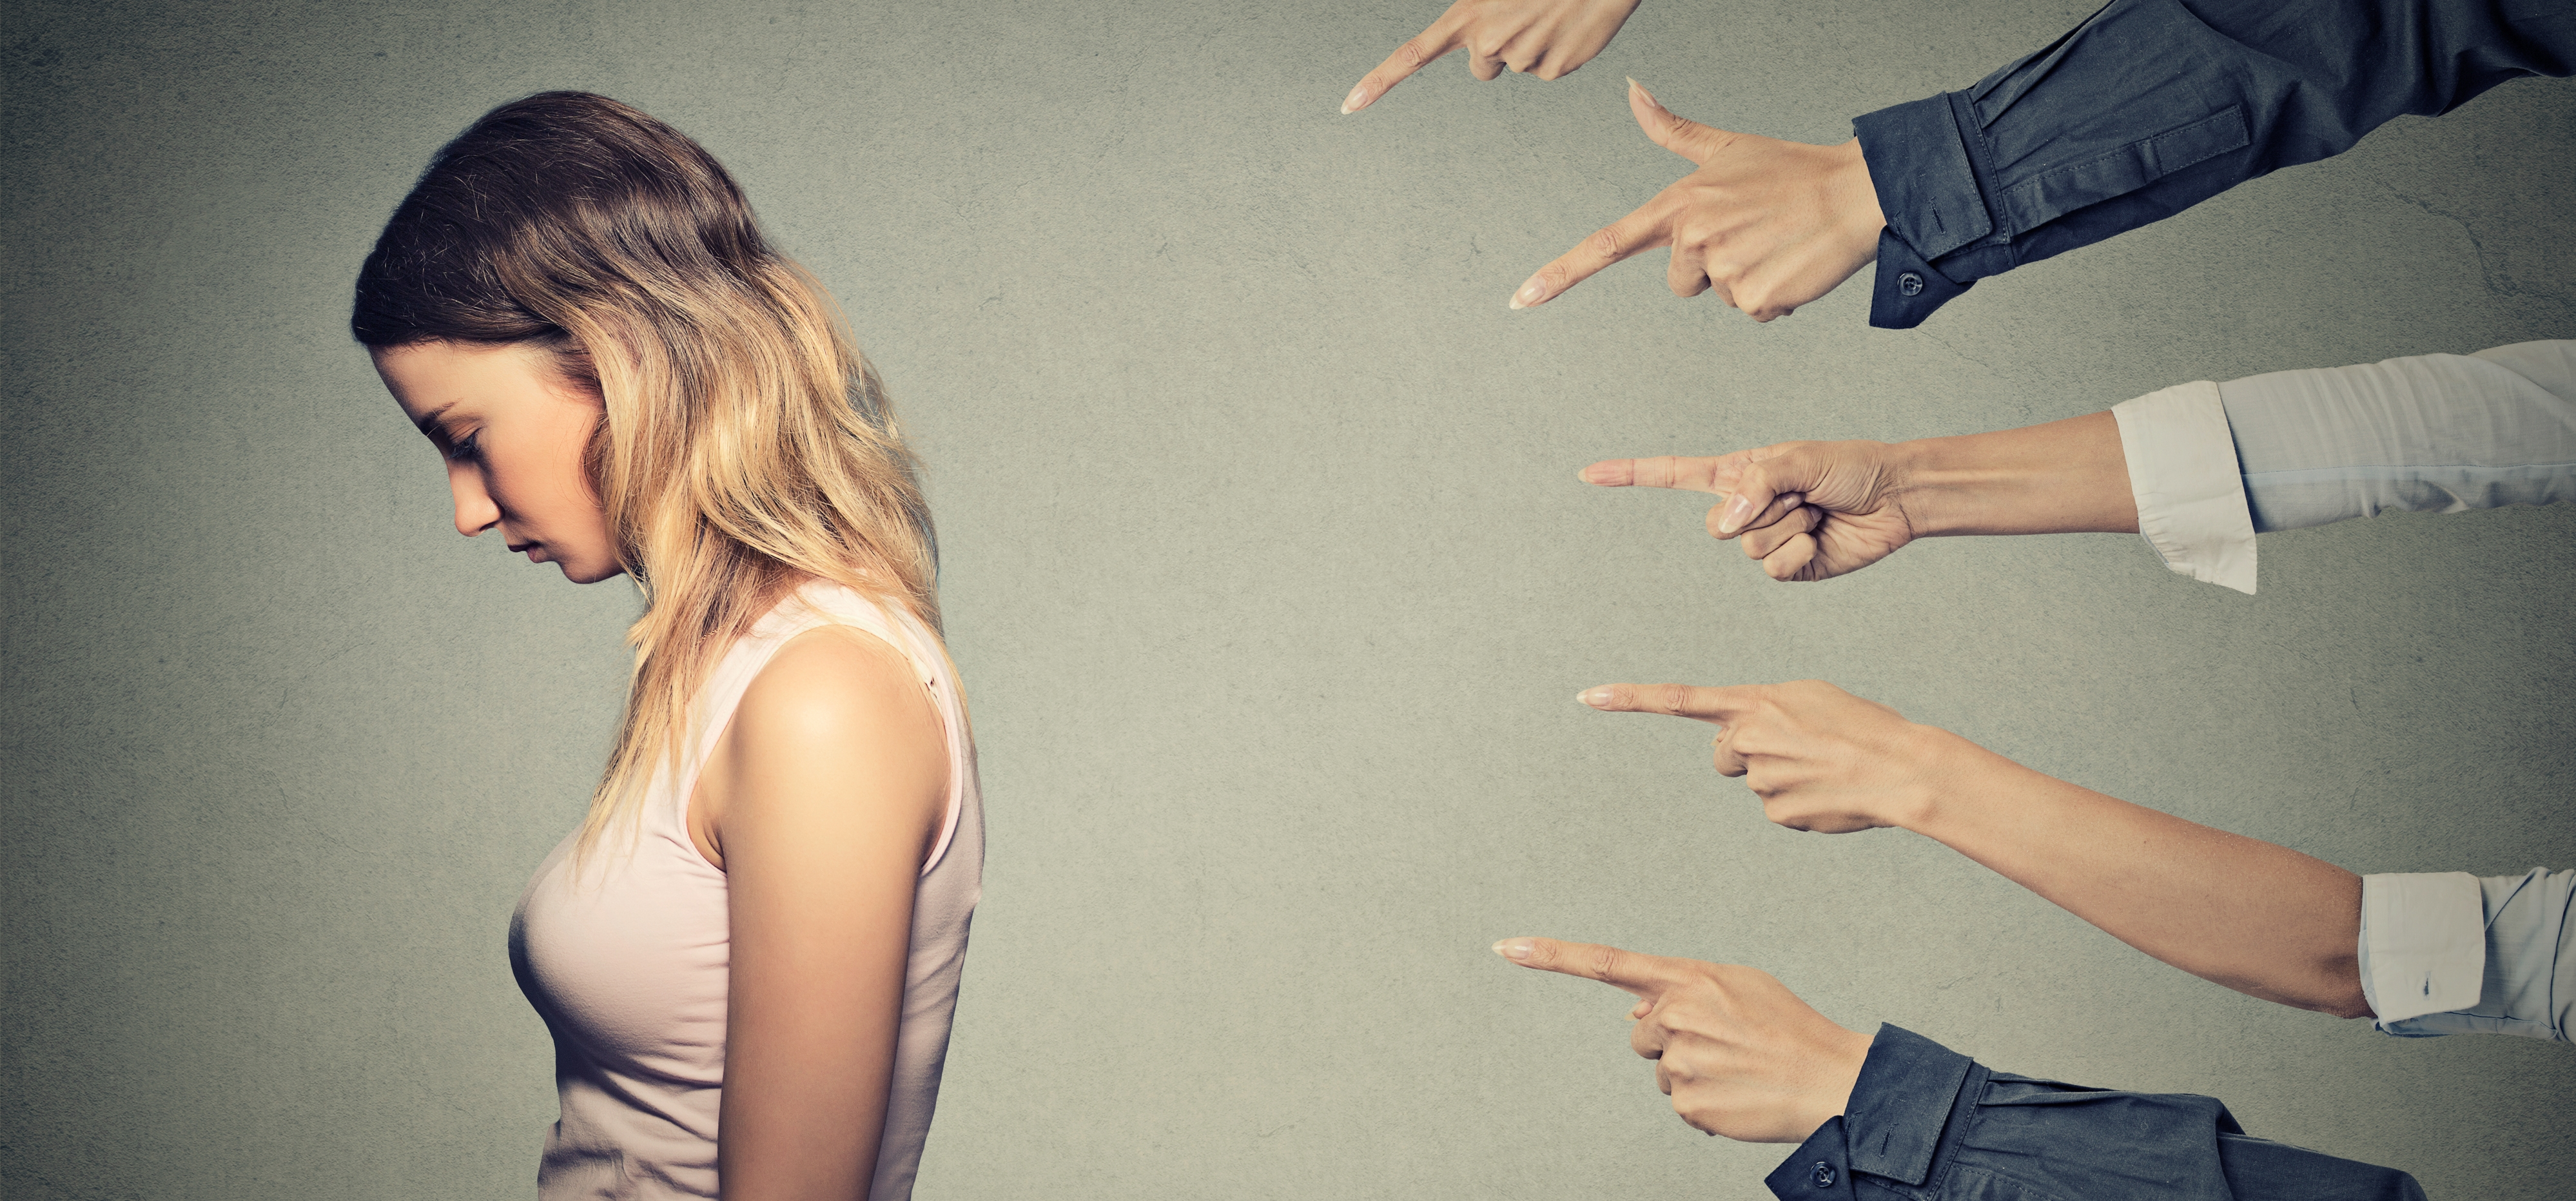 Does your past condemn you? - Universal ...